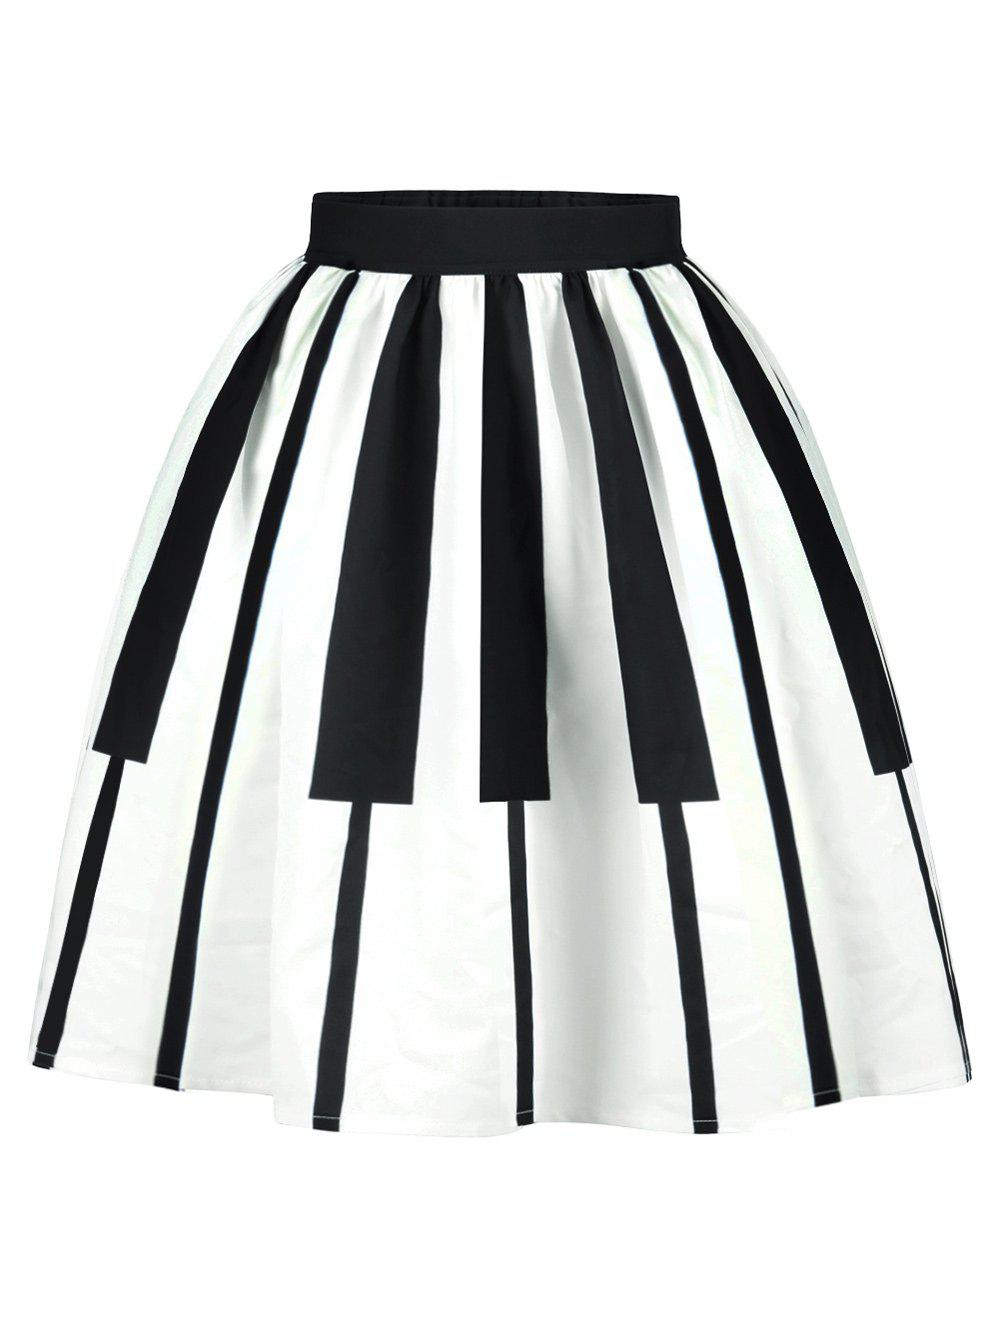 Striped High Waist Two Tone SkirtWOMEN<br><br>Size: L; Color: WHITE AND BLACK; Material: Polyester; Length: Mid-Calf; Silhouette: A-Line; Pattern Type: Striped; Season: Summer; With Belt: No; Weight: 0.2900kg; Package Contents: 1 x Skirt;